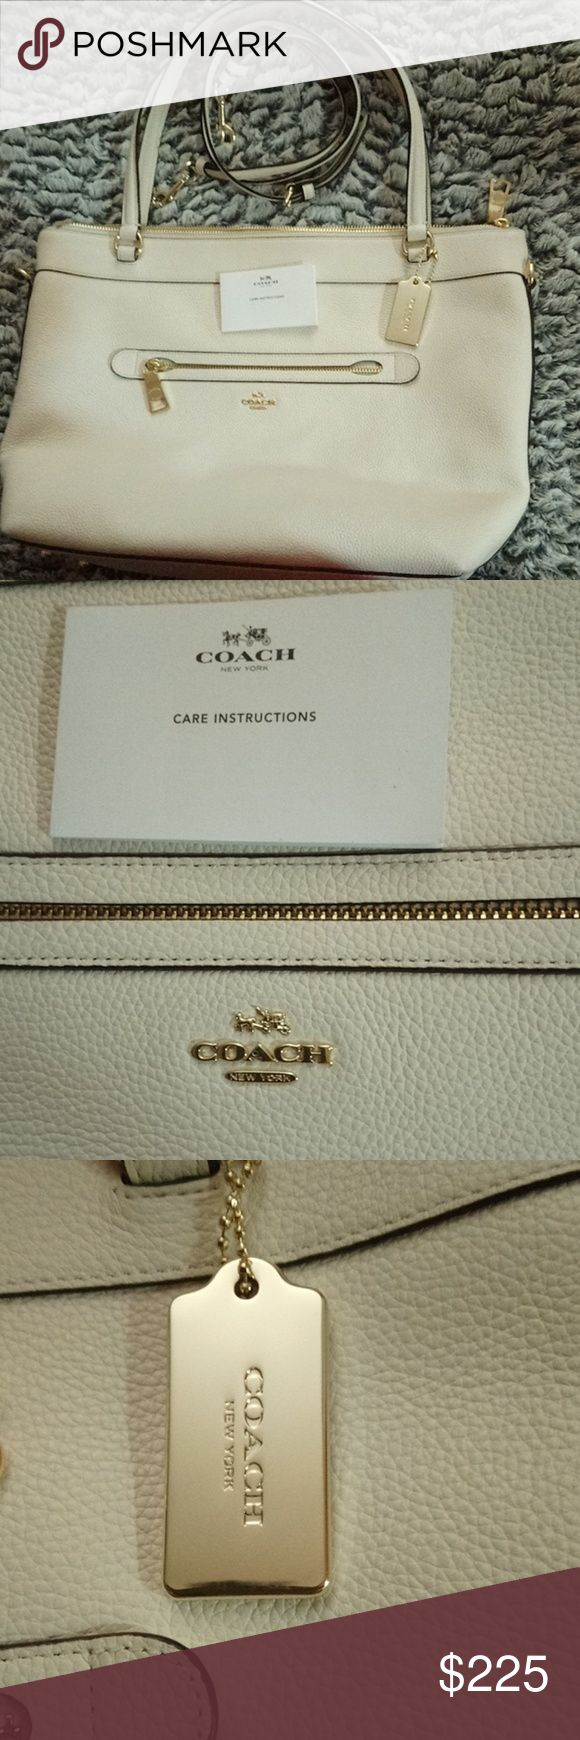 Authentic leather Large off white coach tote bag In perfect condition besides 3 tiny marks from being set down a few times. It is off white with gold hardware and brown fabric inside, 2 side open pockets and one zip inside. Comes with additional long leather adjustable shoulder strap. 1 zip pocket outside. Only used maybe 5 times around Christmas but no stains or marks to the bag besides the bottom corners in pic. No scratches on hardware. Bought full price and please no low offers.💜 All…